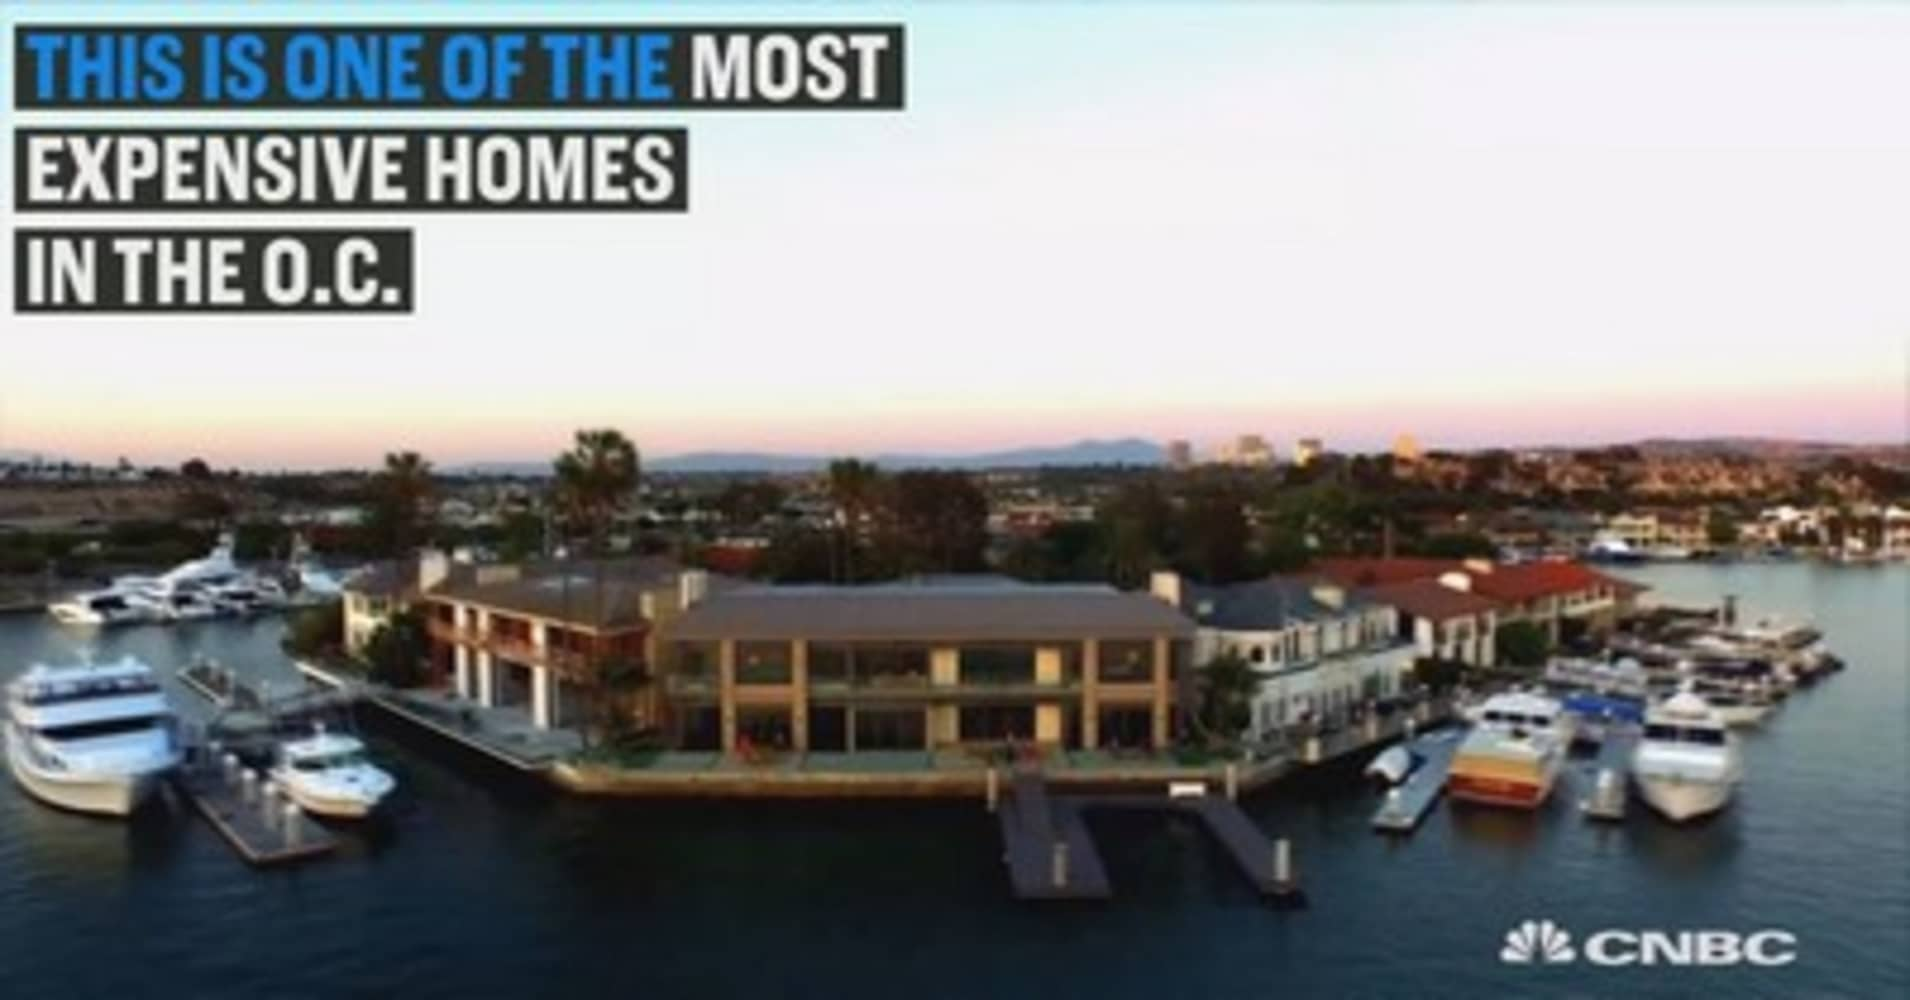 check out one of the most expensive homes in the o.c